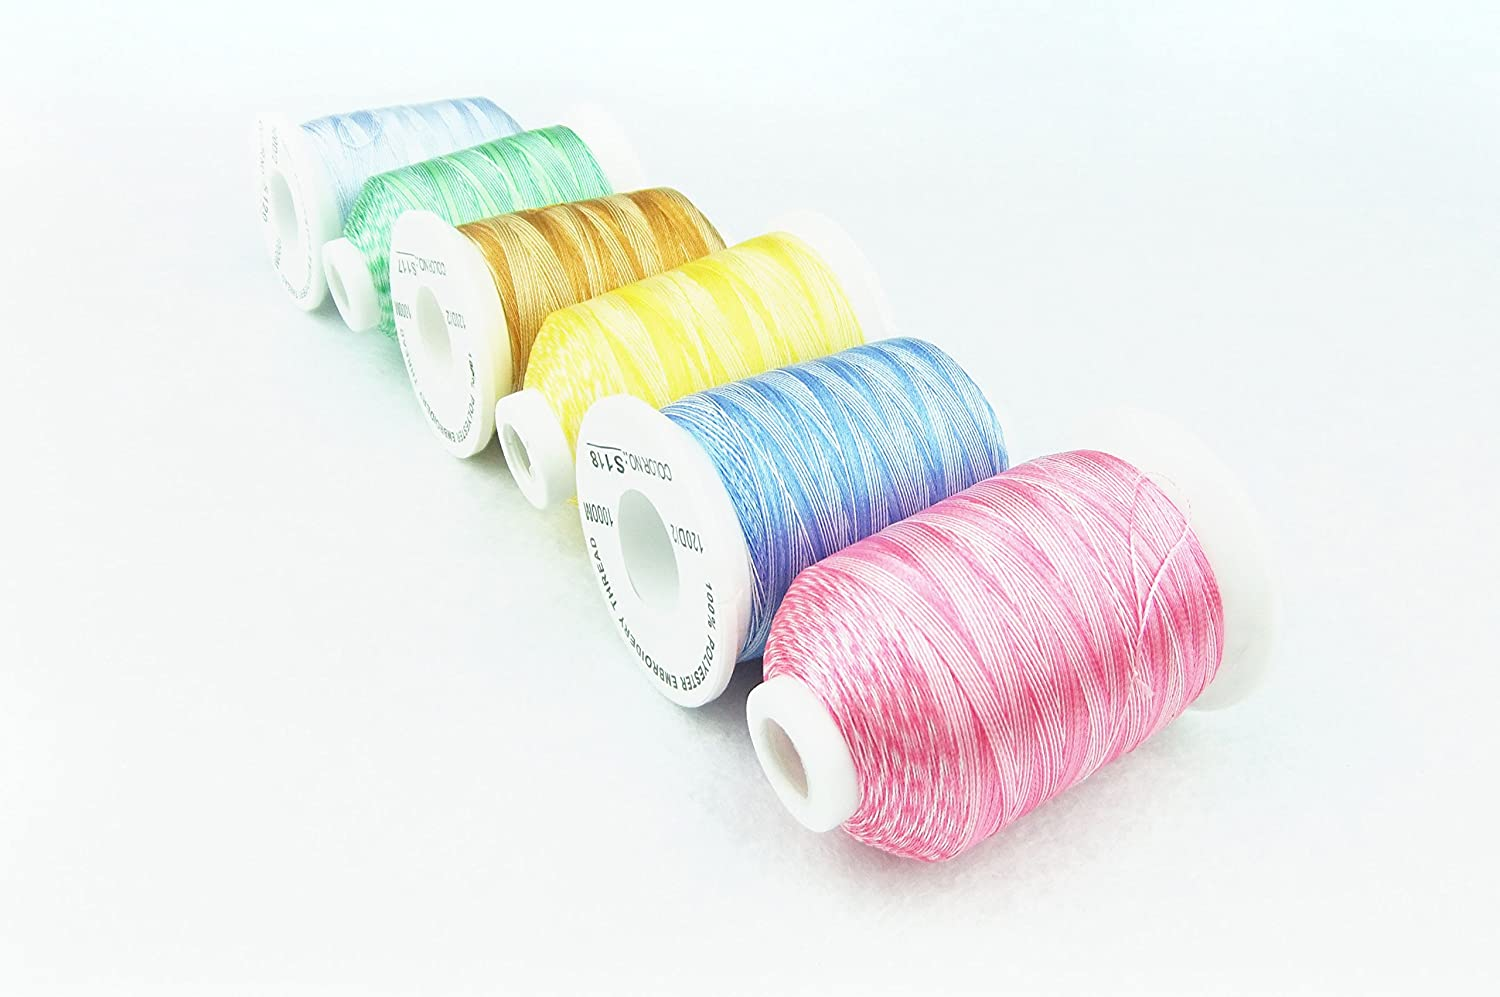 Simthread New 6 Spool Variegated Embroidery Thread for Brother Machines 1100Y 1000M Each Spool Home Embroidery Sewing